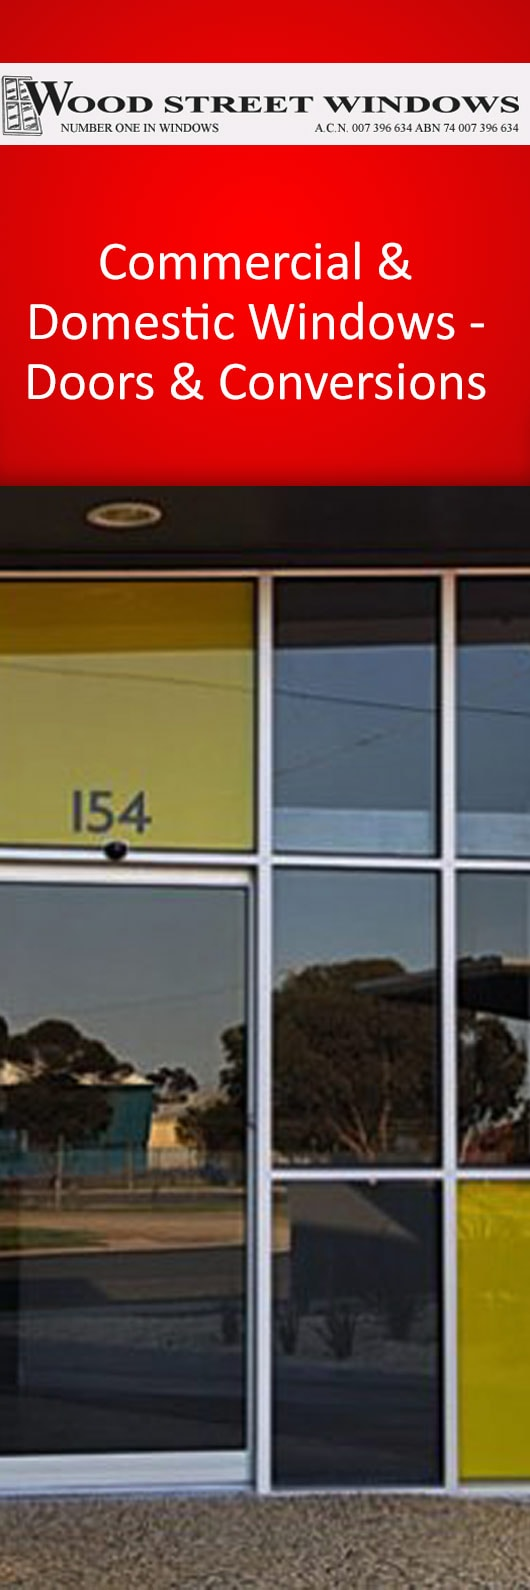 Residential windows commercial windows marine windows products - Wood Street Windows Promotion